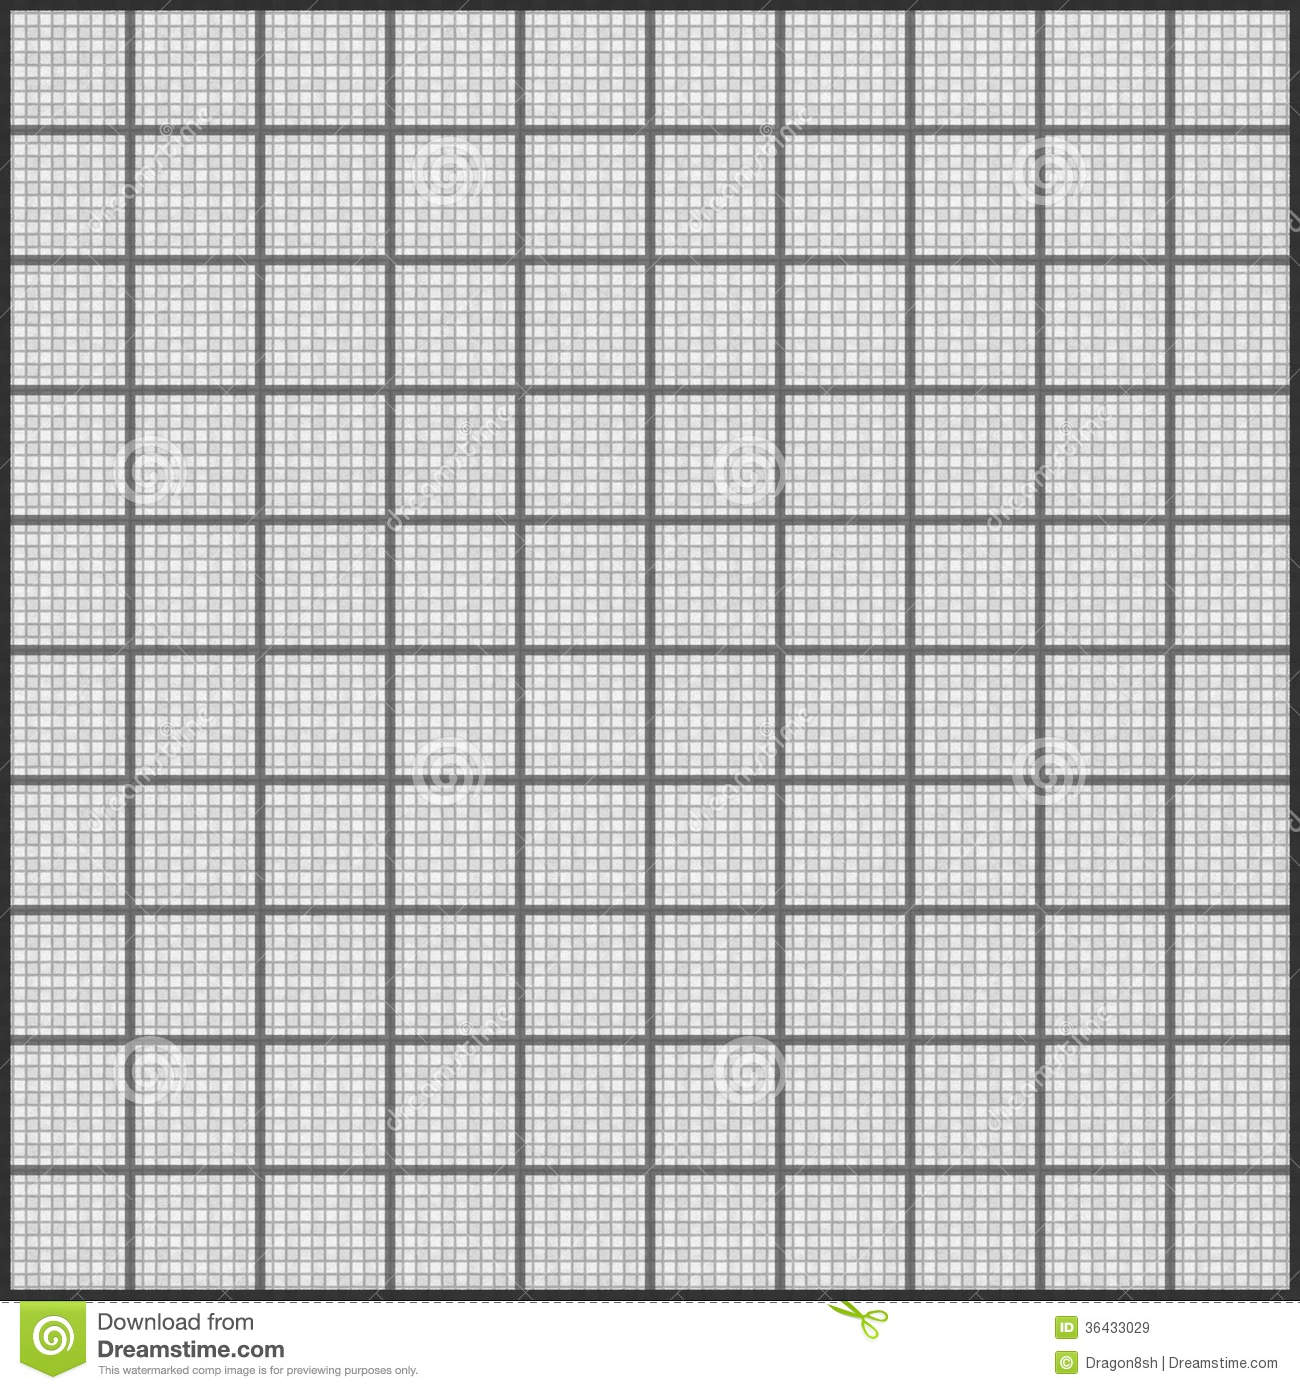 Black grid on white paper tileable royalty free stock for Delicate in texture crossword clue